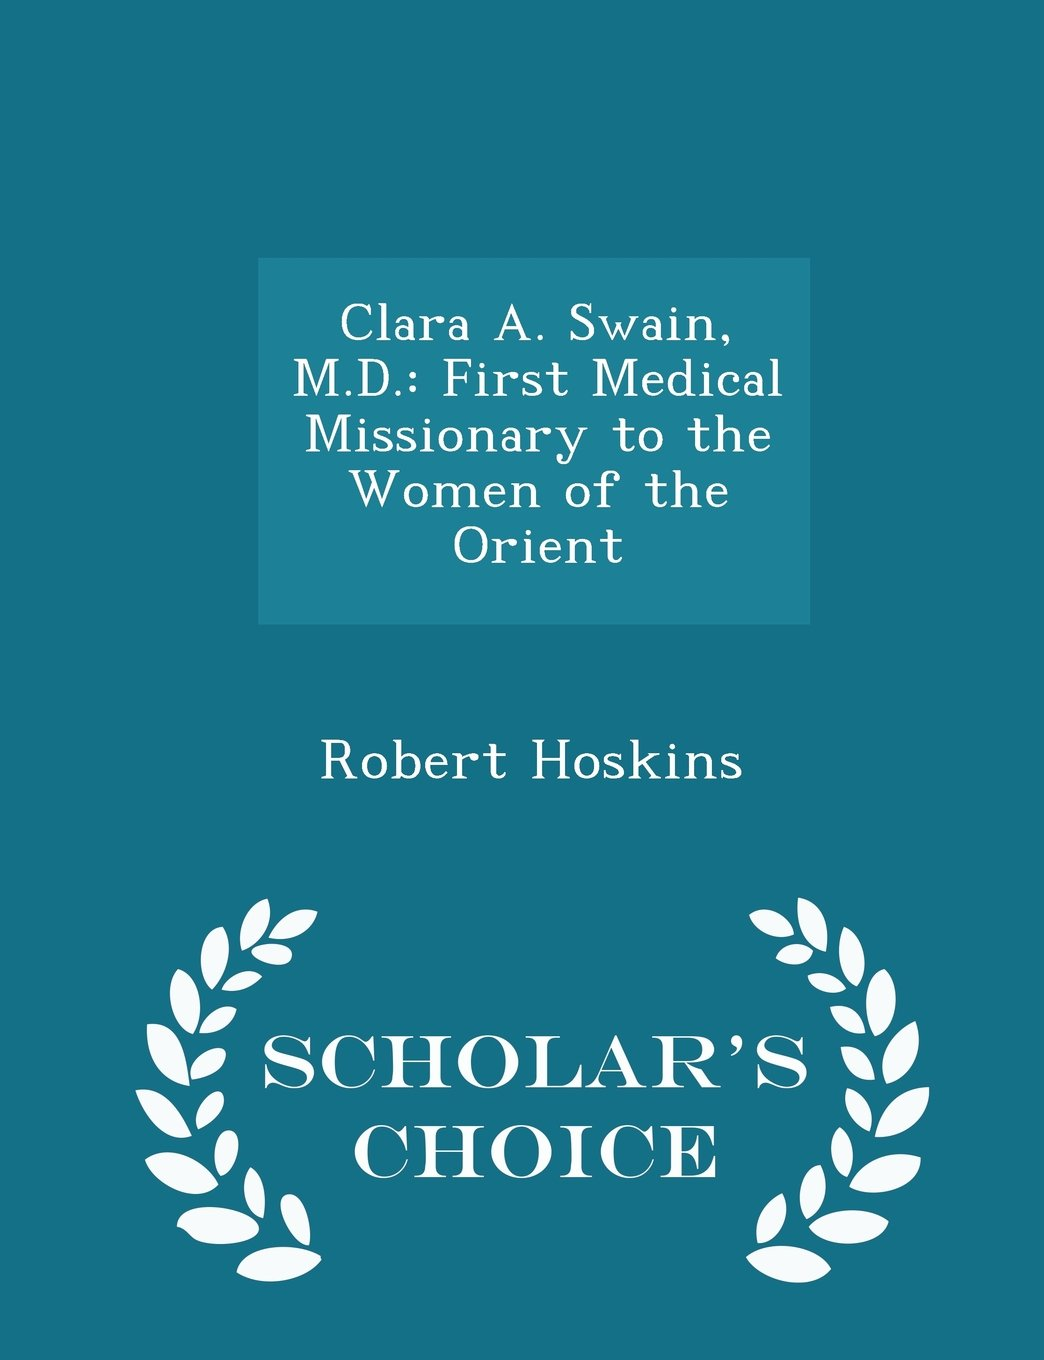 Download Clara A. Swain, M.D.: First Medical Missionary to the Women of the Orient - Scholar's Choice Edition PDF